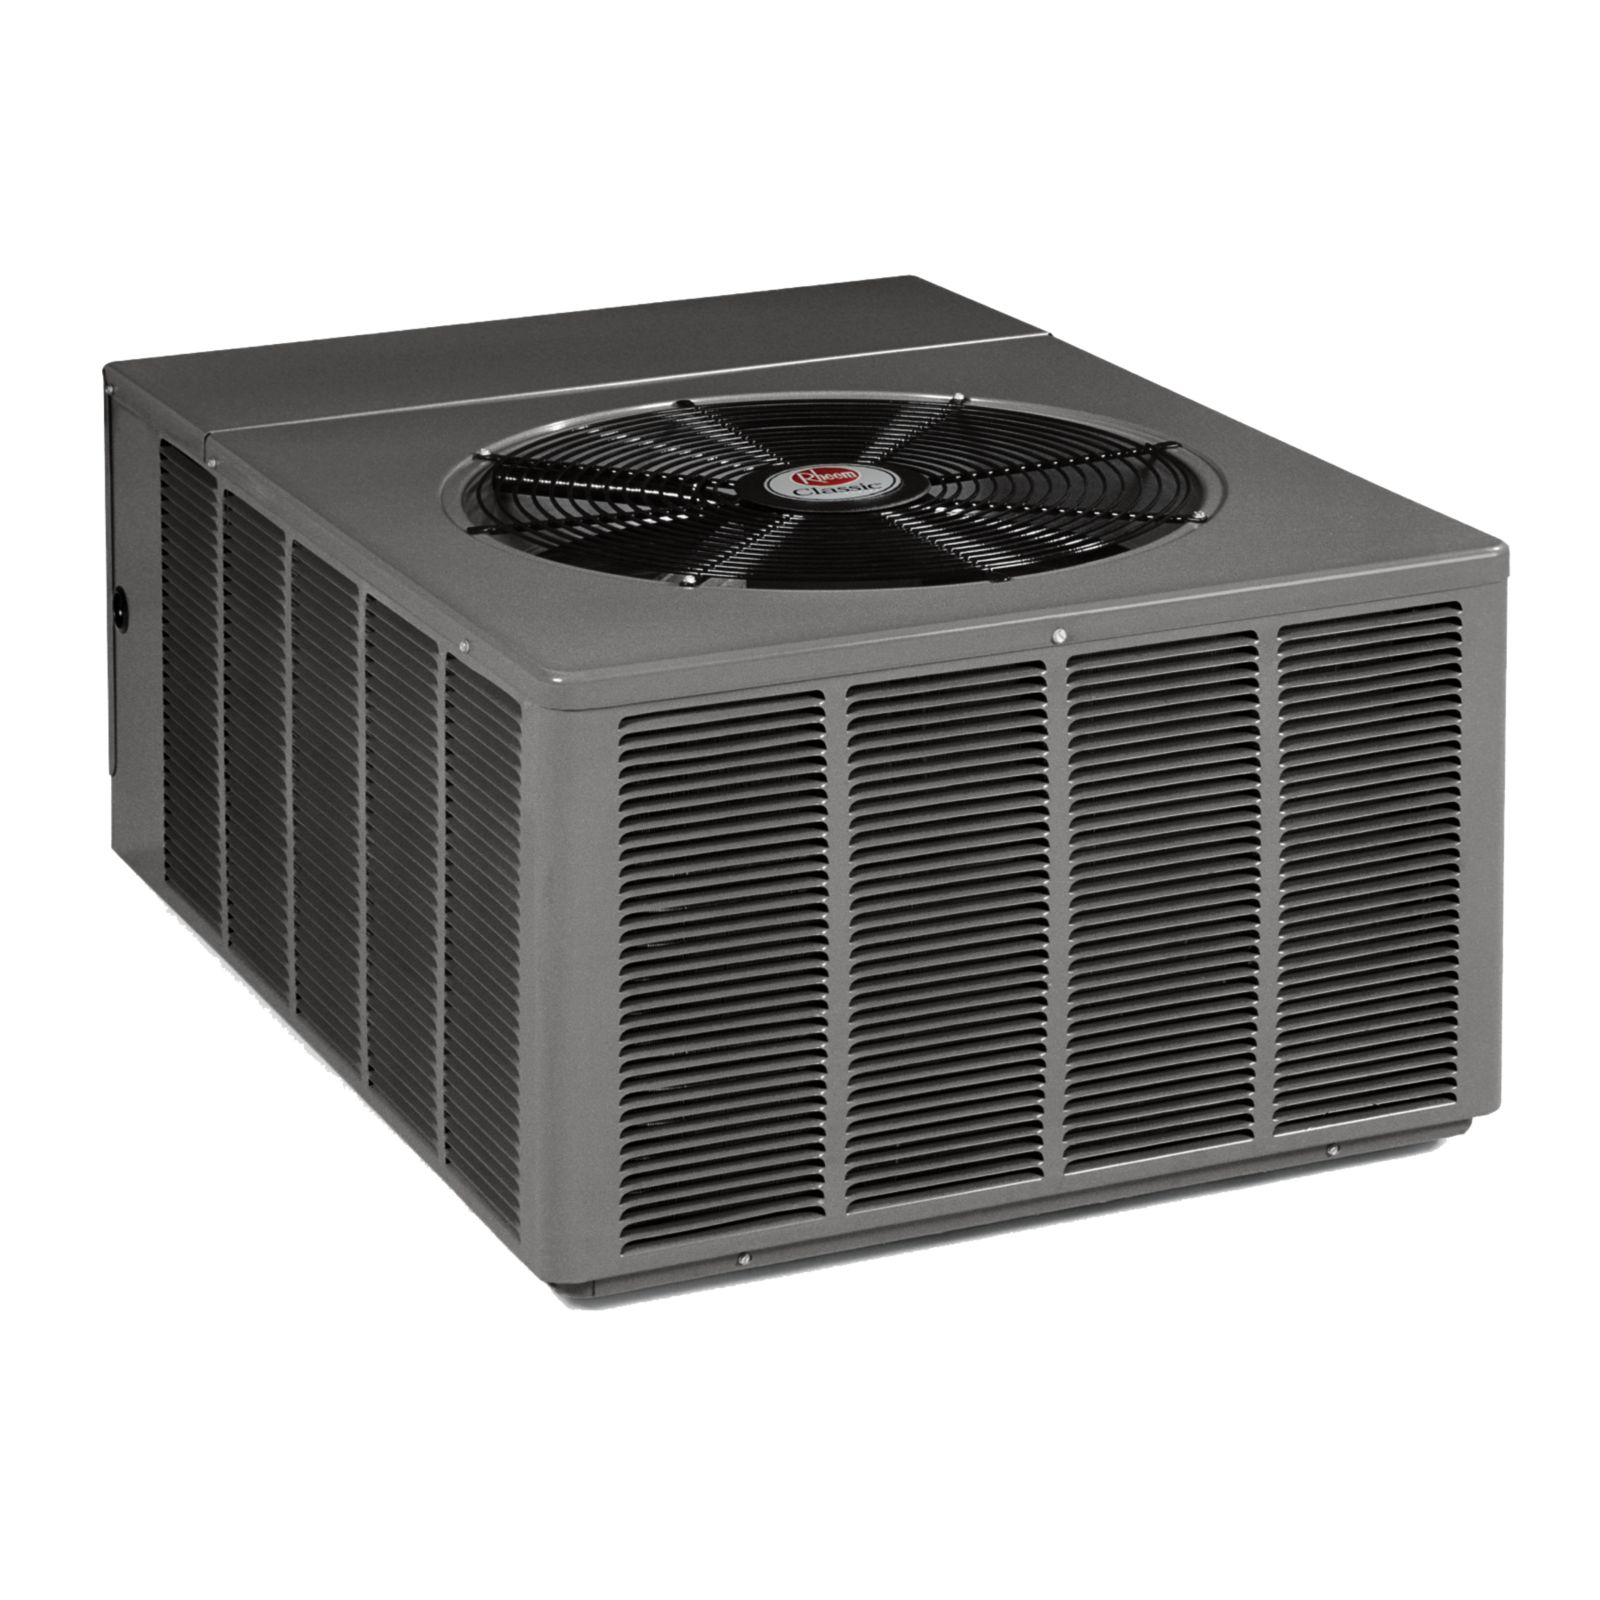 Rheem RAPM-048JAZ - Classic Series 4 Ton, 14.5 SEER, R410A Air Conditioner Condenser 208-230 V, 1 Ph, 60 Hz